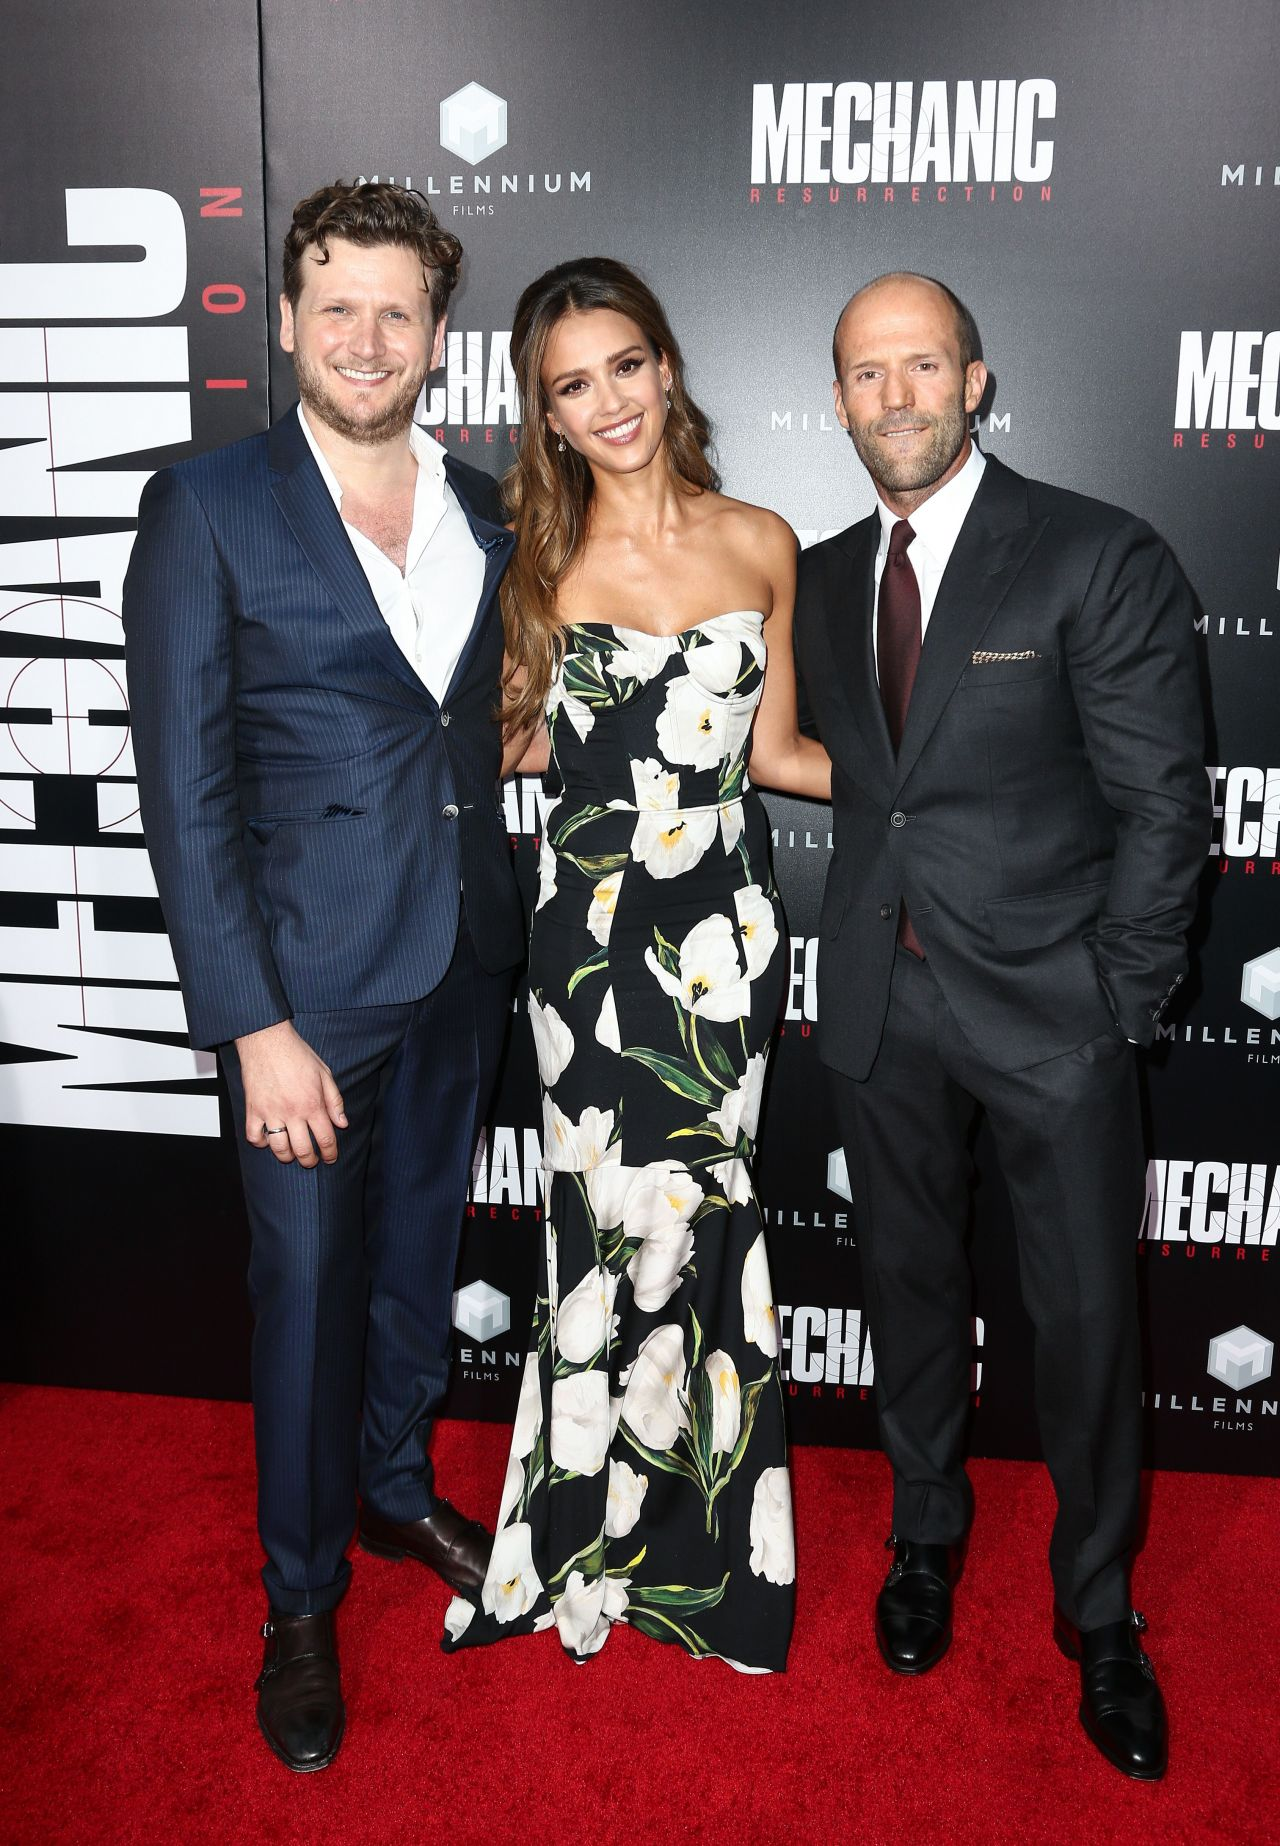 http://celebmafia.com/wp-content/uploads/2016/08/jessica-alba-mechanic-resurrection-premiere-in-los-angeles-08-22-2016-25.jpg